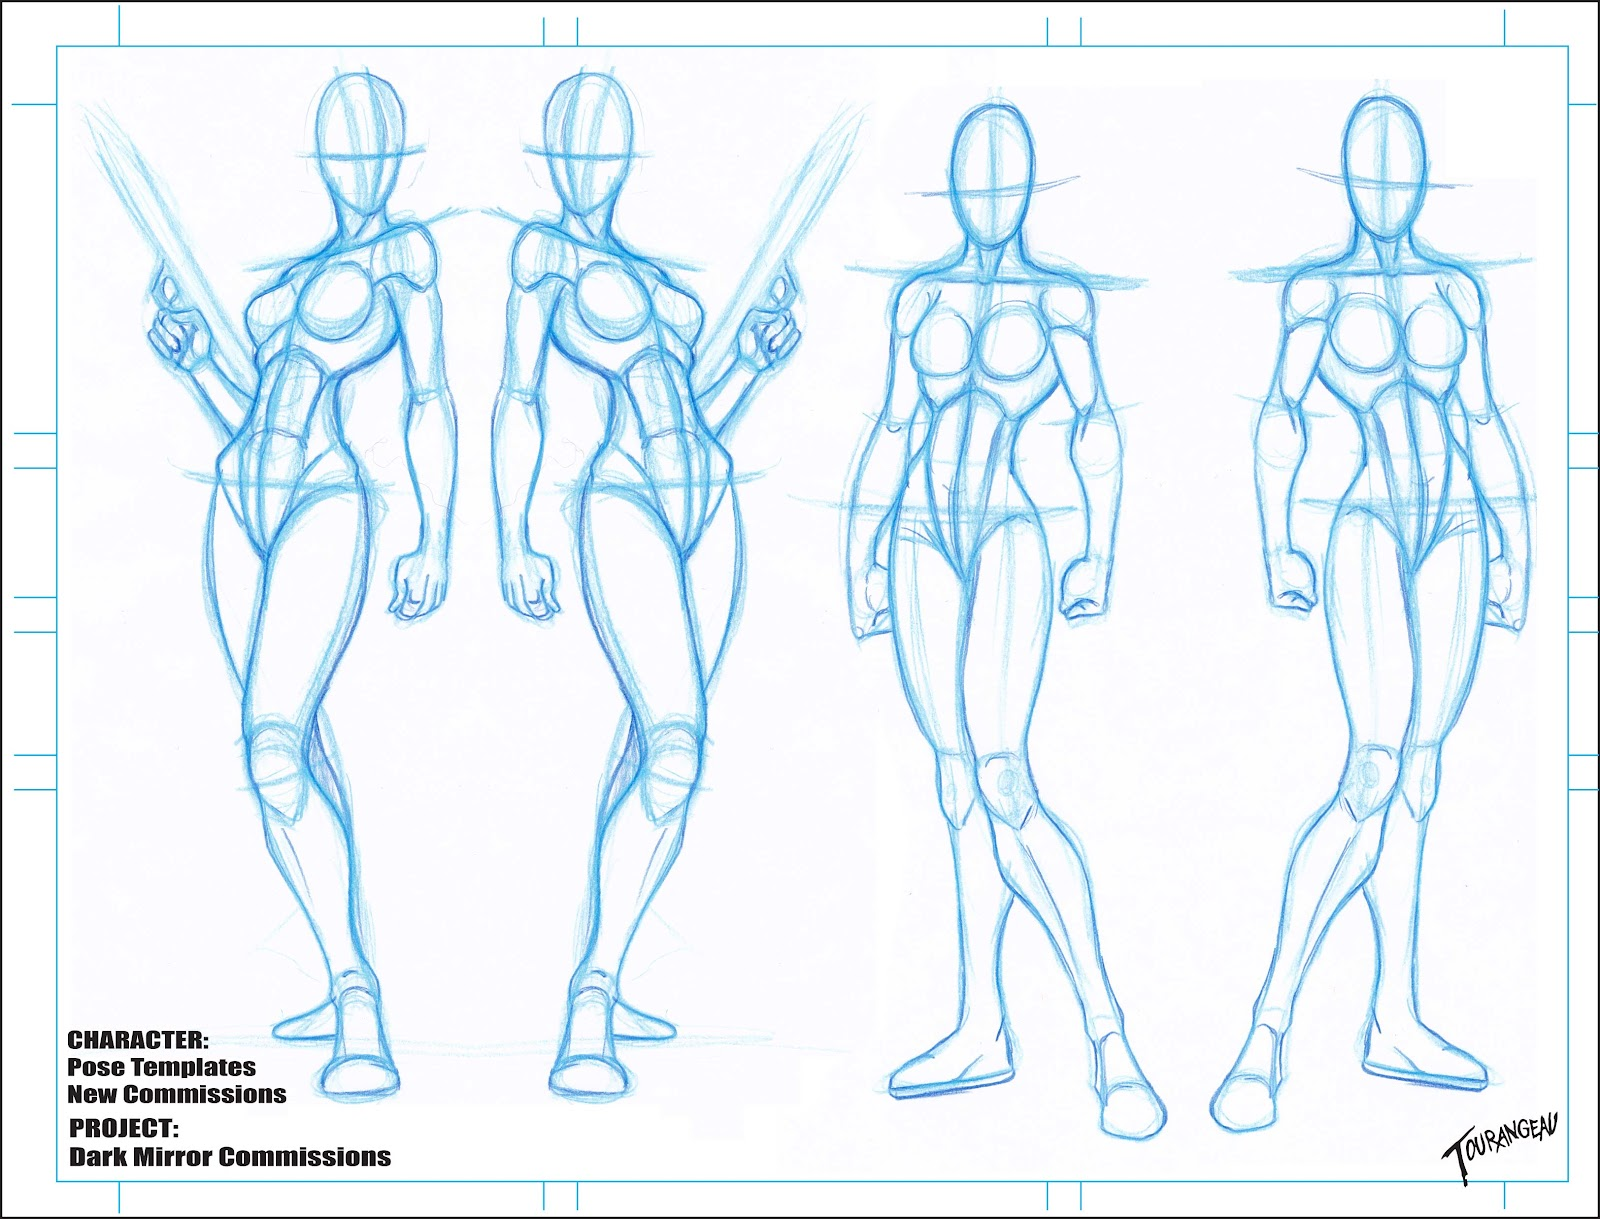 Comic Book Character Design Template : The art of sean tourangeau new character blanks